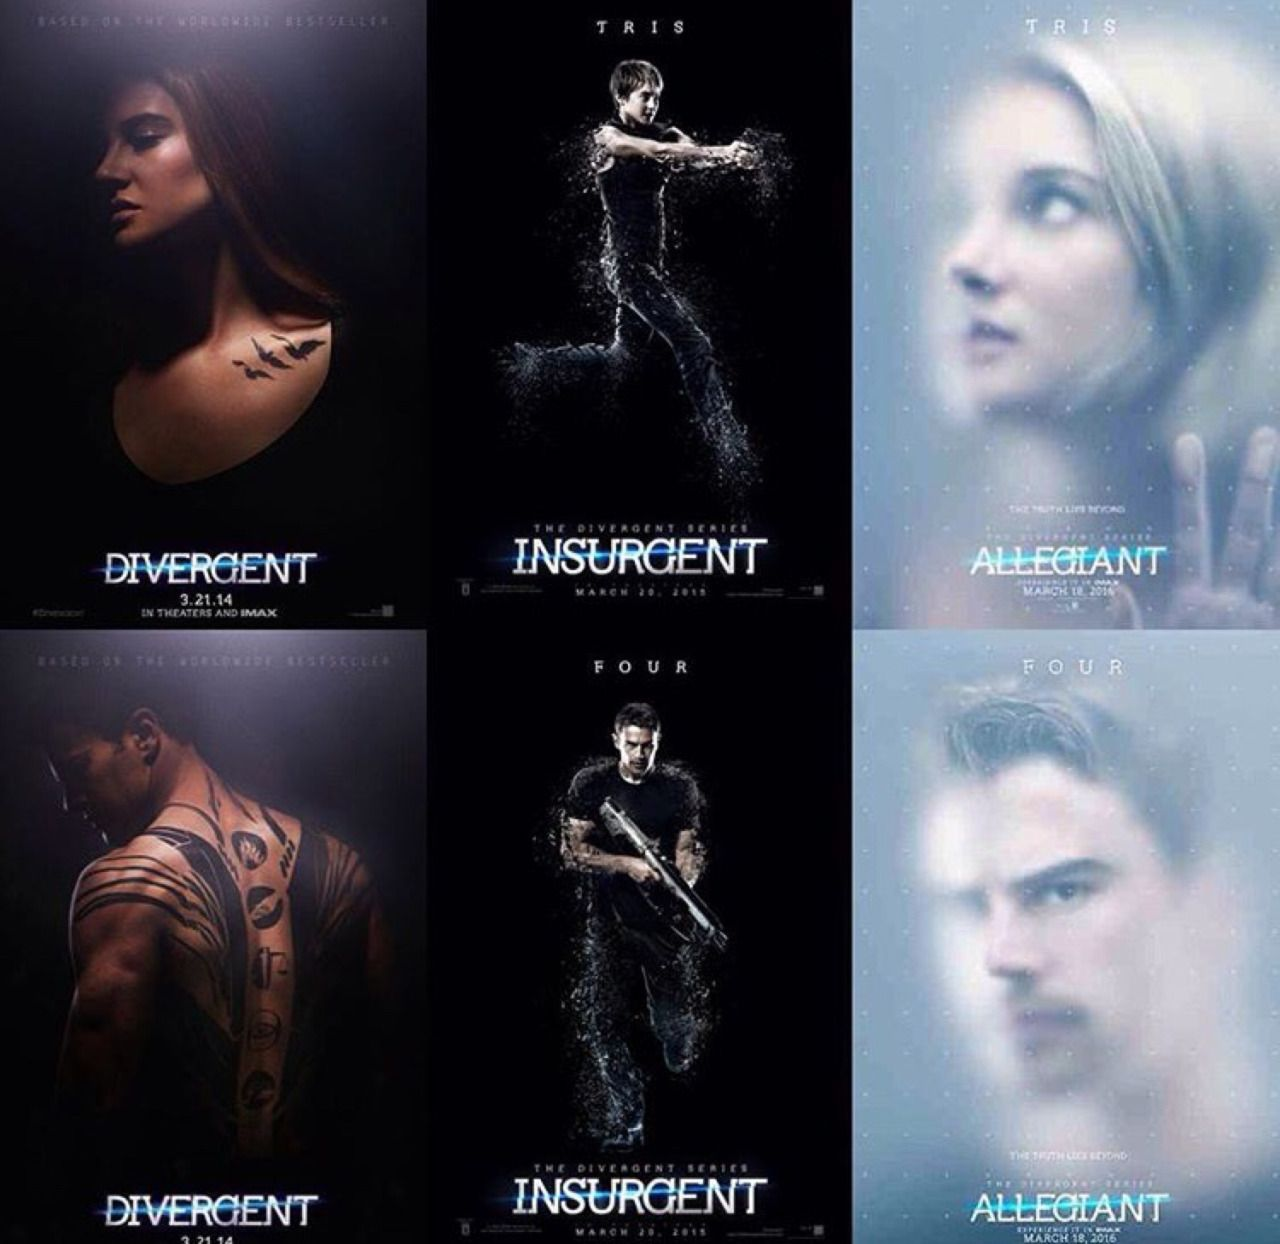 ALLEGIANT TRAILER IS OUT TOBIAS LOOKS SO HOT! | Divergent ...